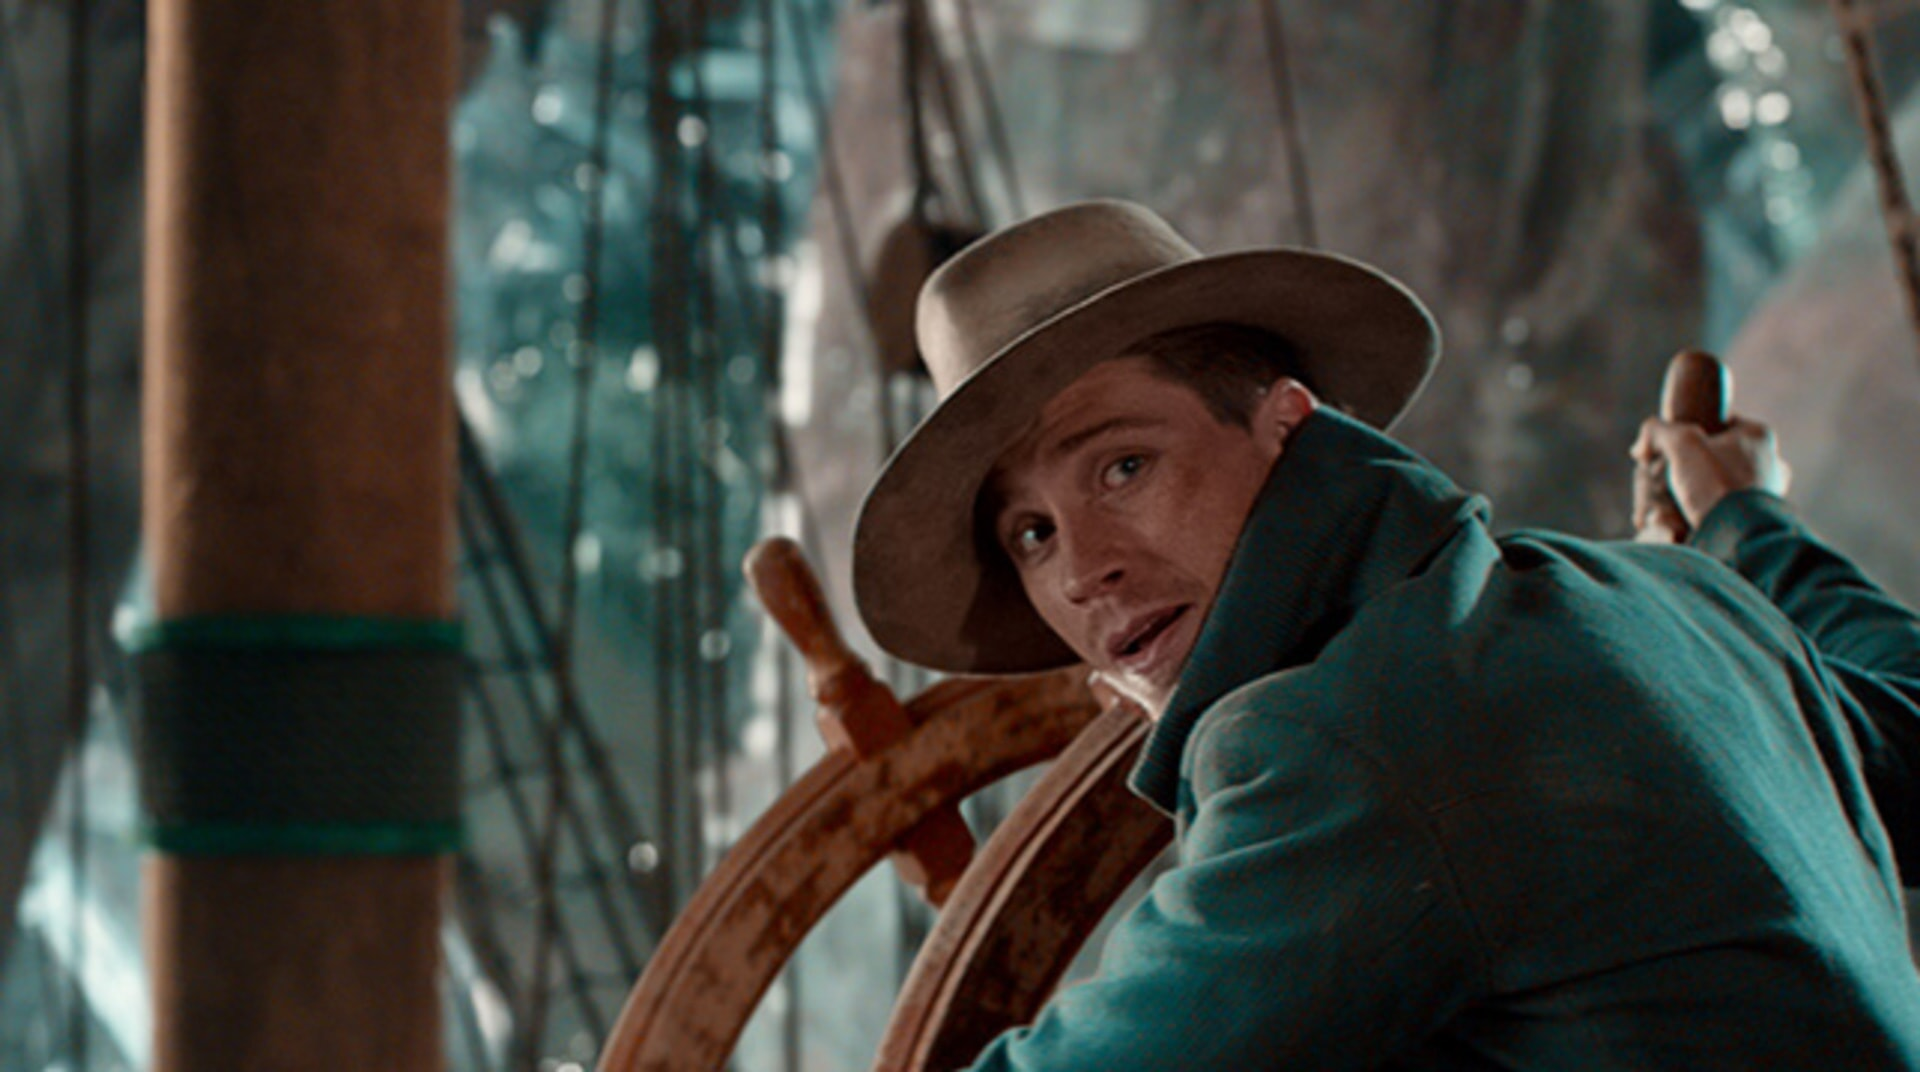 """GARRETT HEDLUND as Hook in Warner Bros. Pictures' and RatPac-Dune Entertainment's action adventure """"PAN,"""" a Warner Bros. Pictures release."""